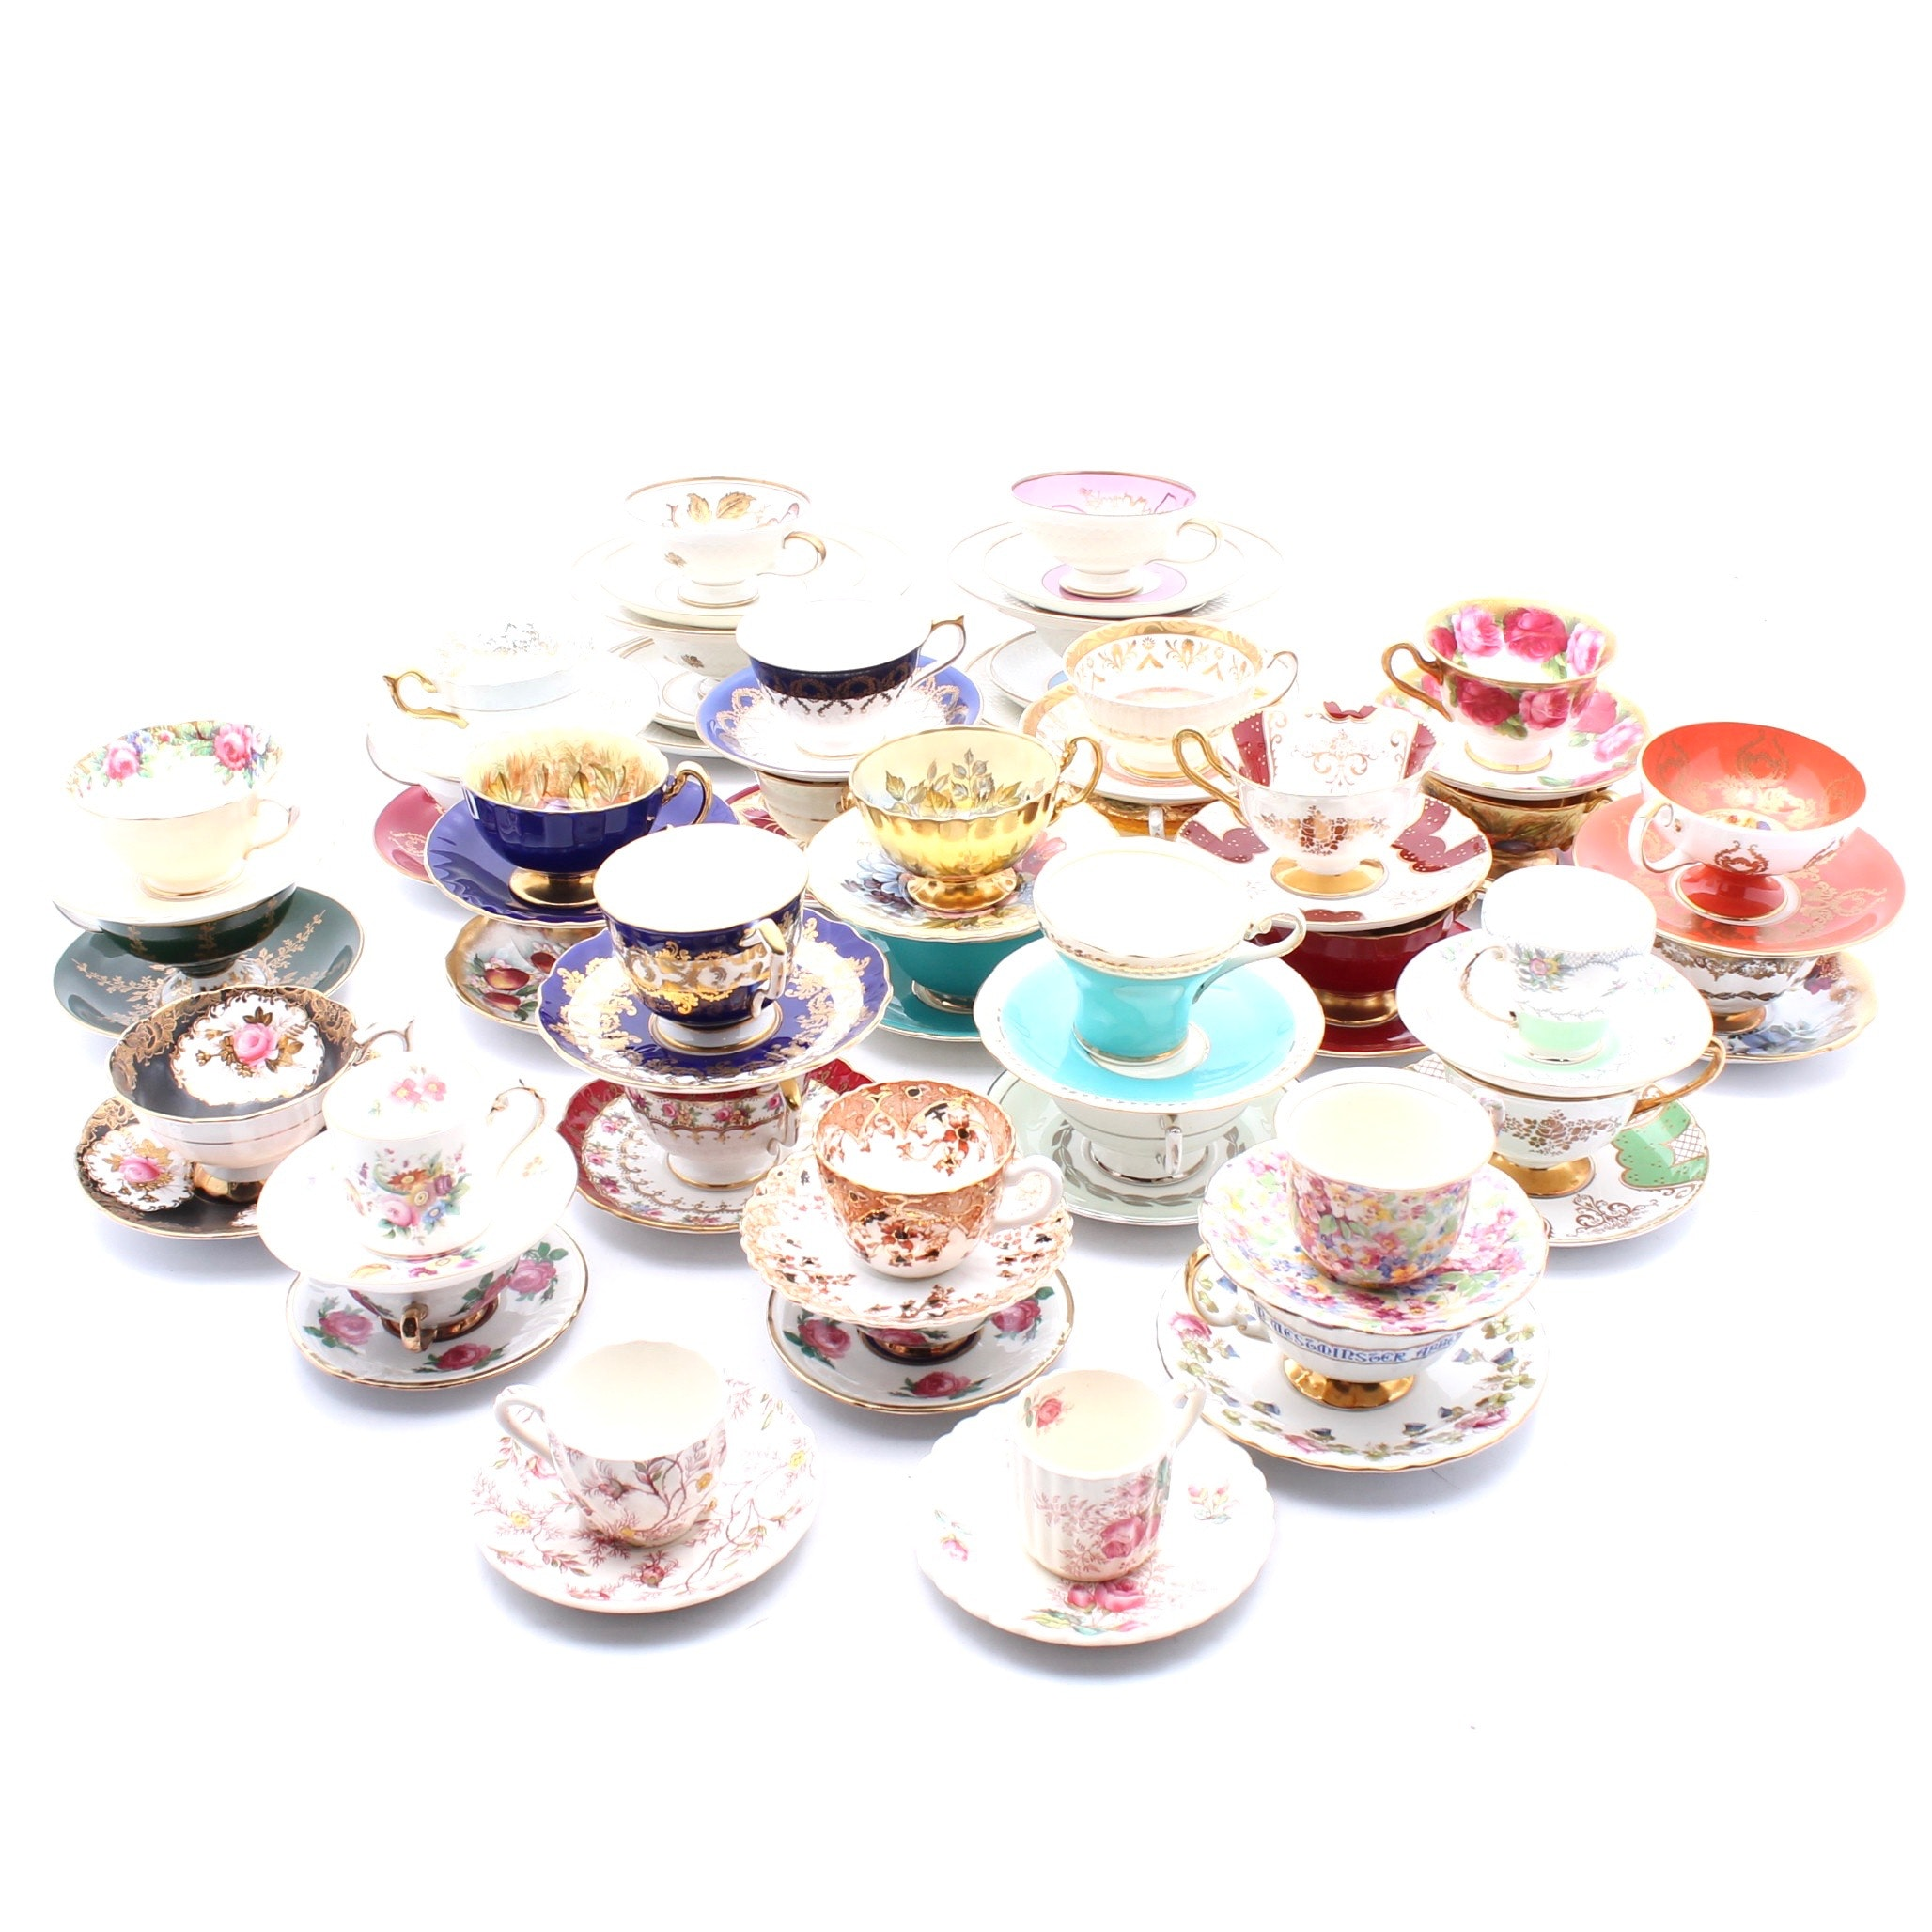 Porcelain Tea Cups and Saucers including Copeland Spode and Aynsley